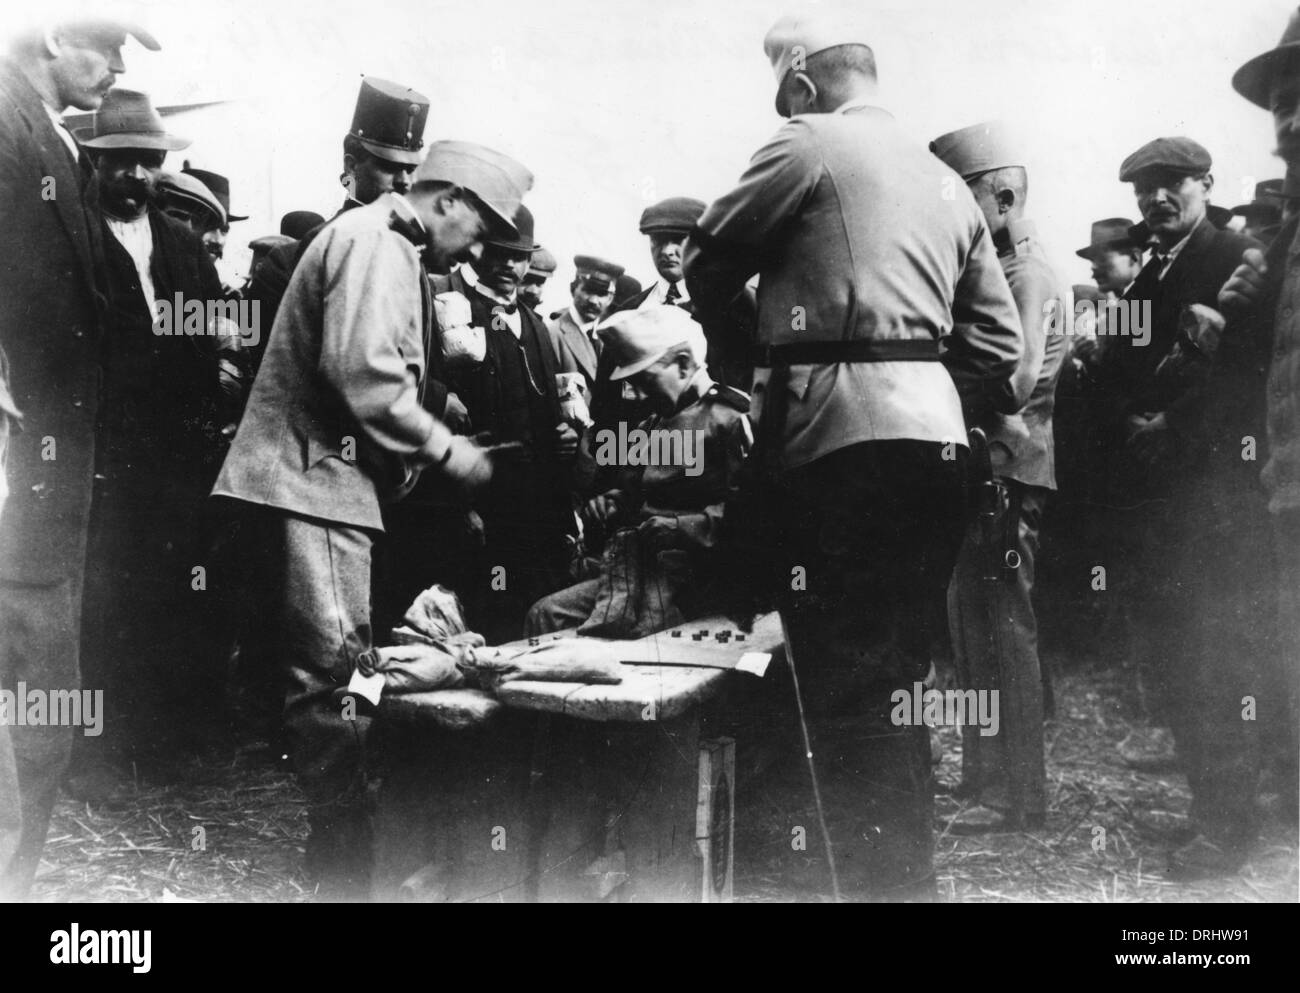 Austrian army receiving their first pay, WW1 - Stock Image